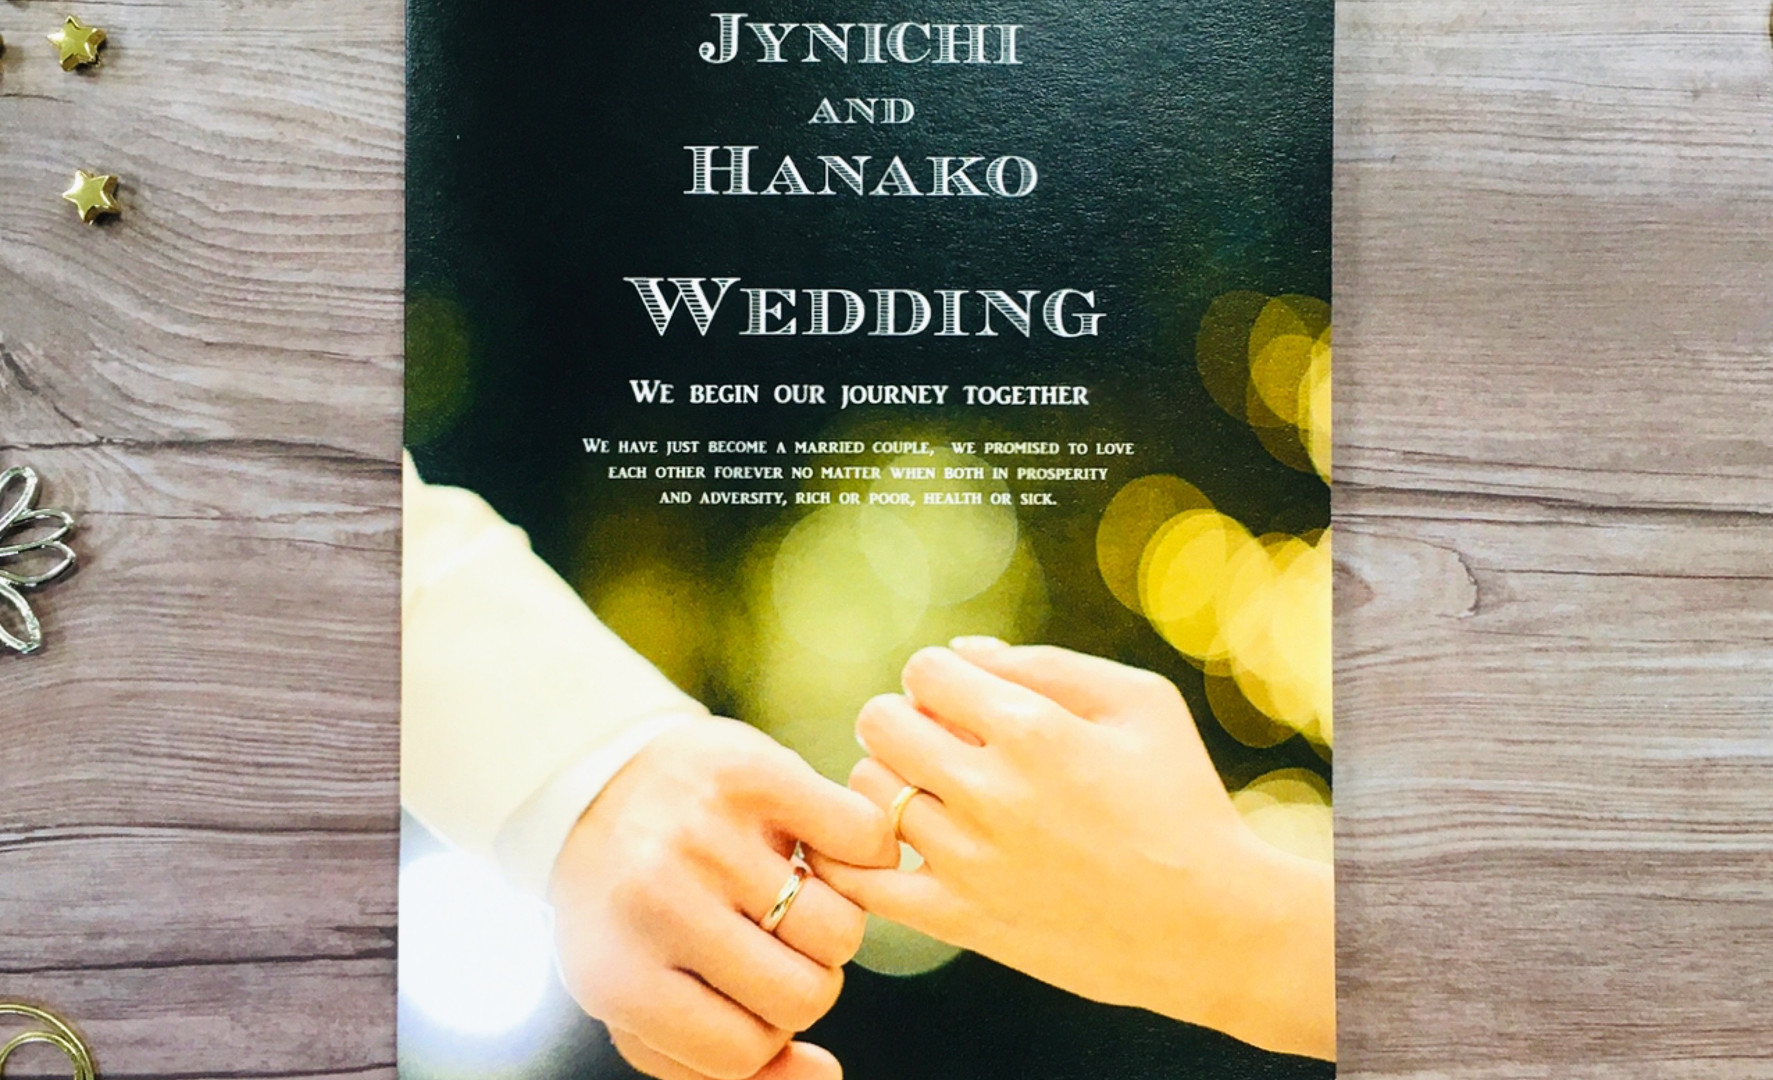 Just married デザイン6-A-1.jpg